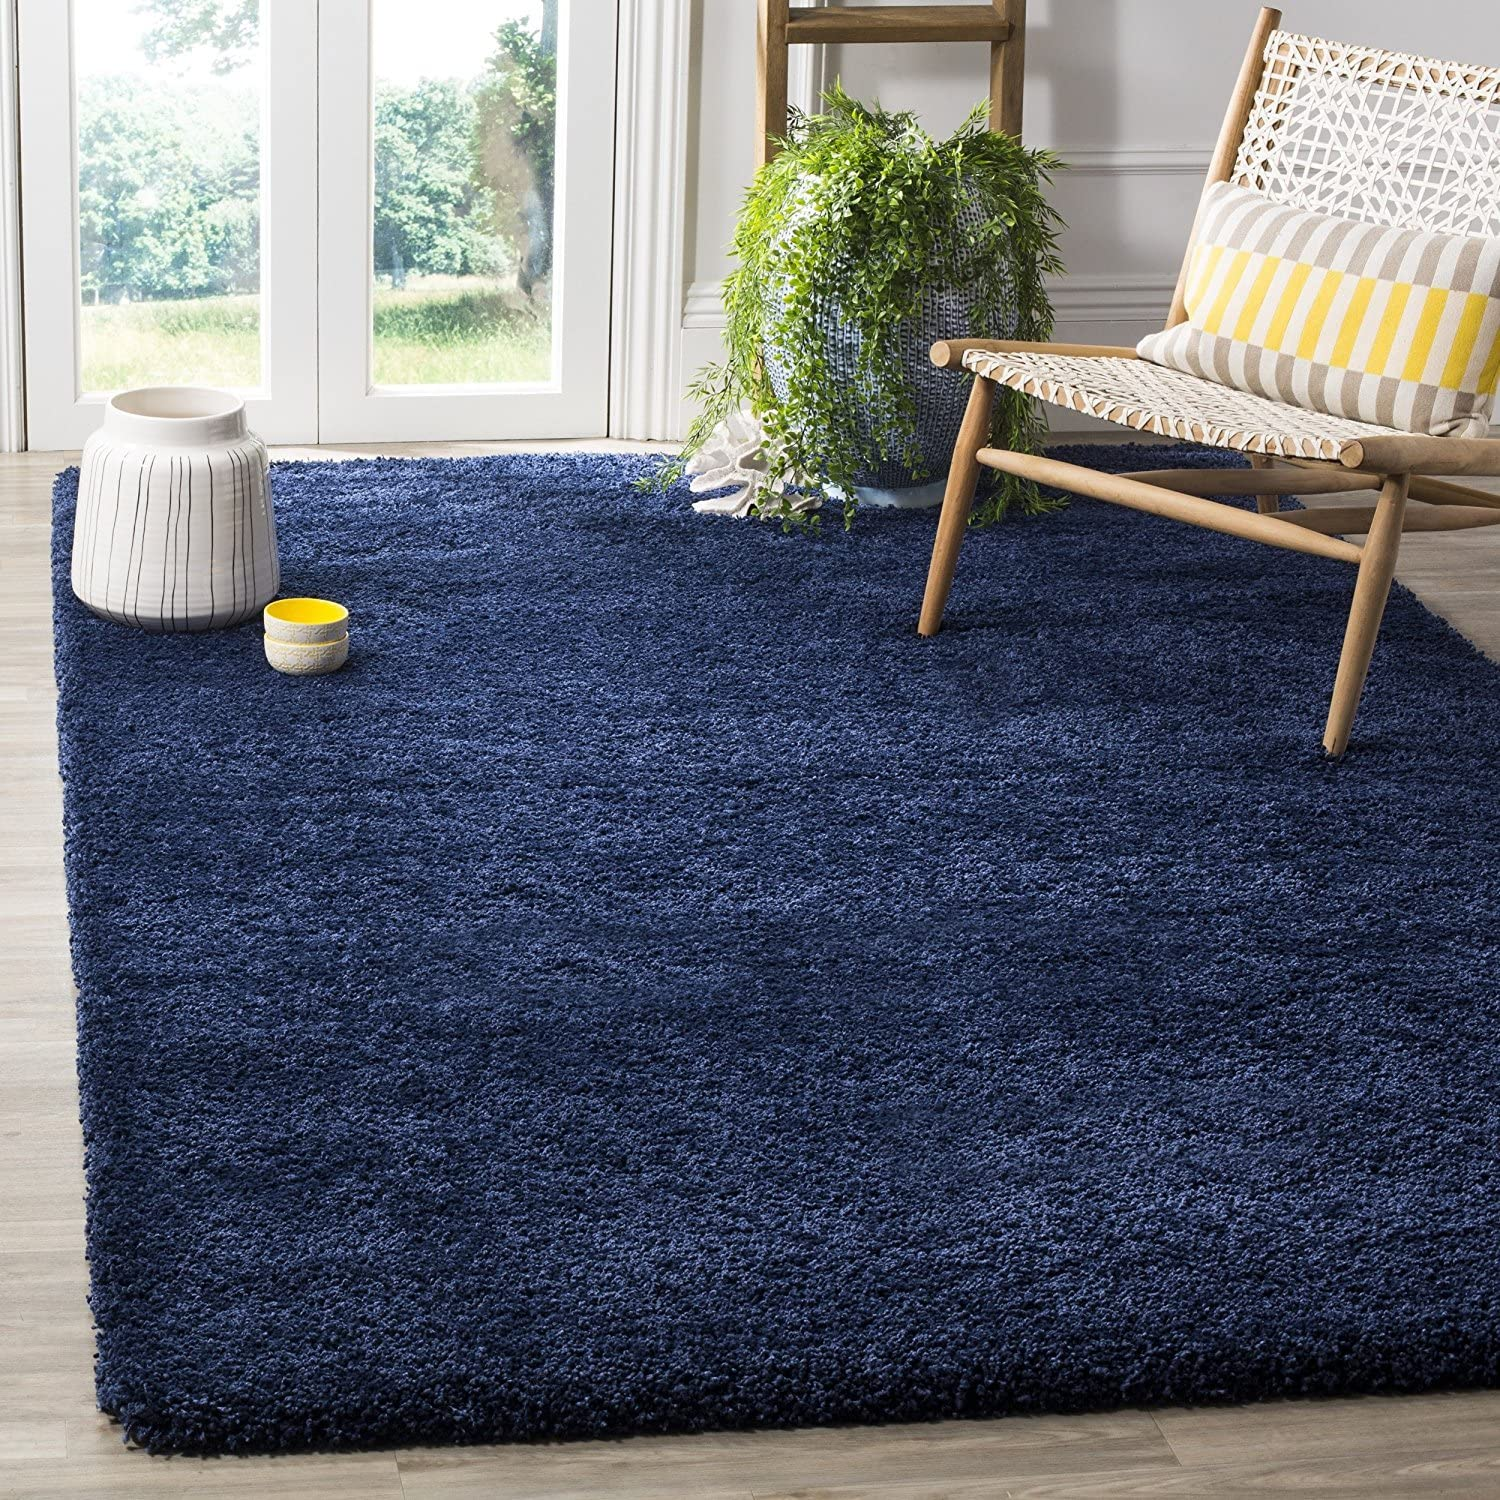 Bravich Rugmasters Navy Blue Extra Large Rug 5 Cm Thick Shag Pile Soft Shaggy Area Rugs Modern Carpet Living Room Bedroom Mats 160 X 230 Cm 5 3 X 7 7 Amazon Co Uk Kitchen